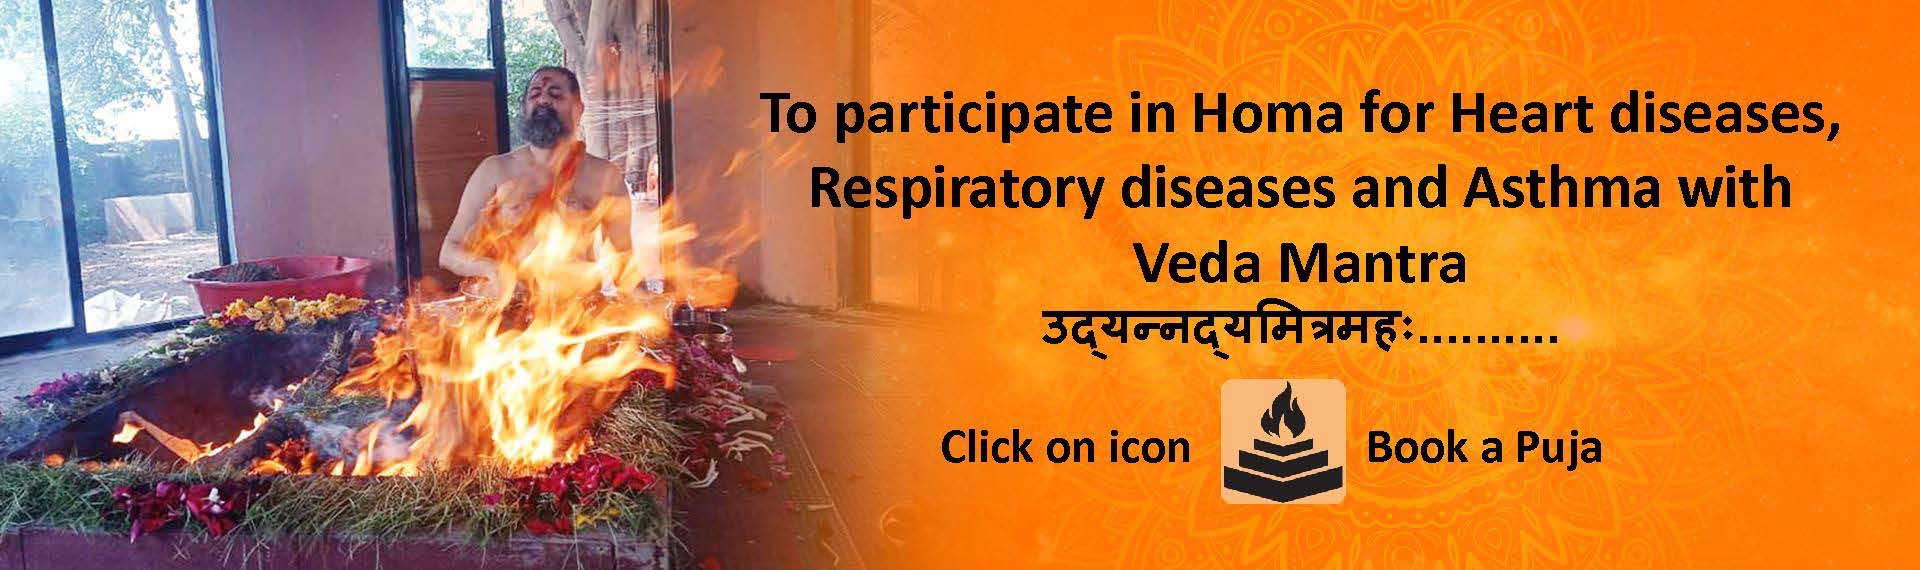 Homa for heart diseases, respiratory diseases and asthma with Veda Mantra